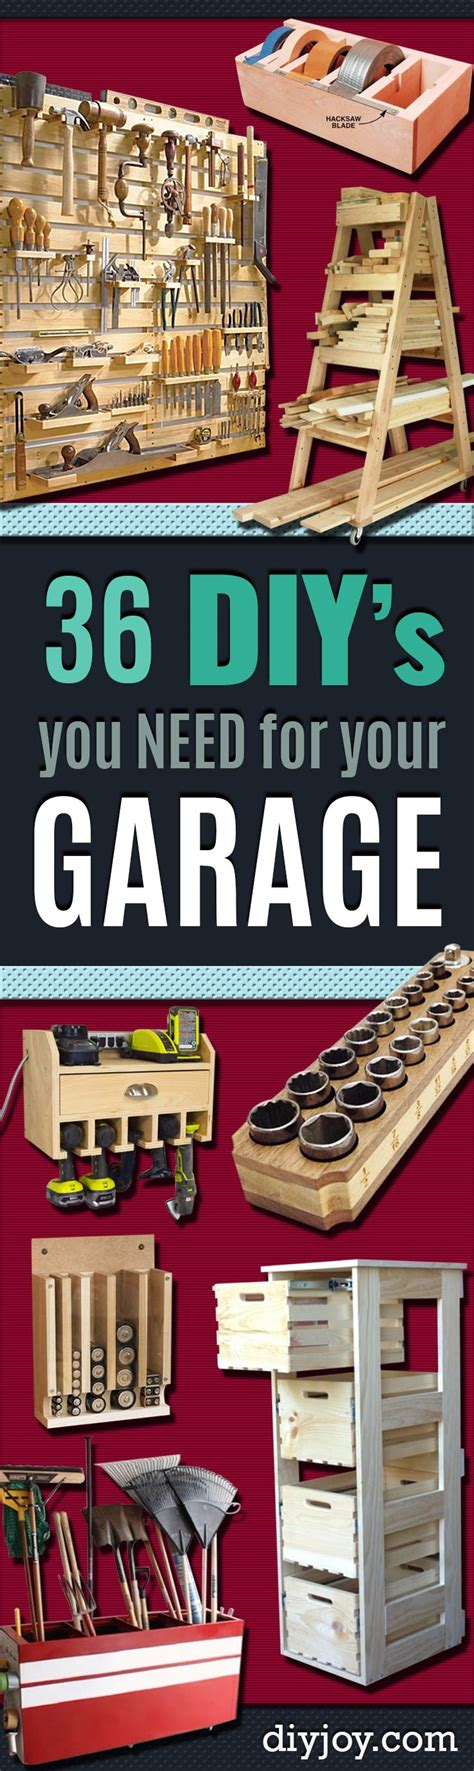 diy floor l makeover 36 diy ideas you need for your garage